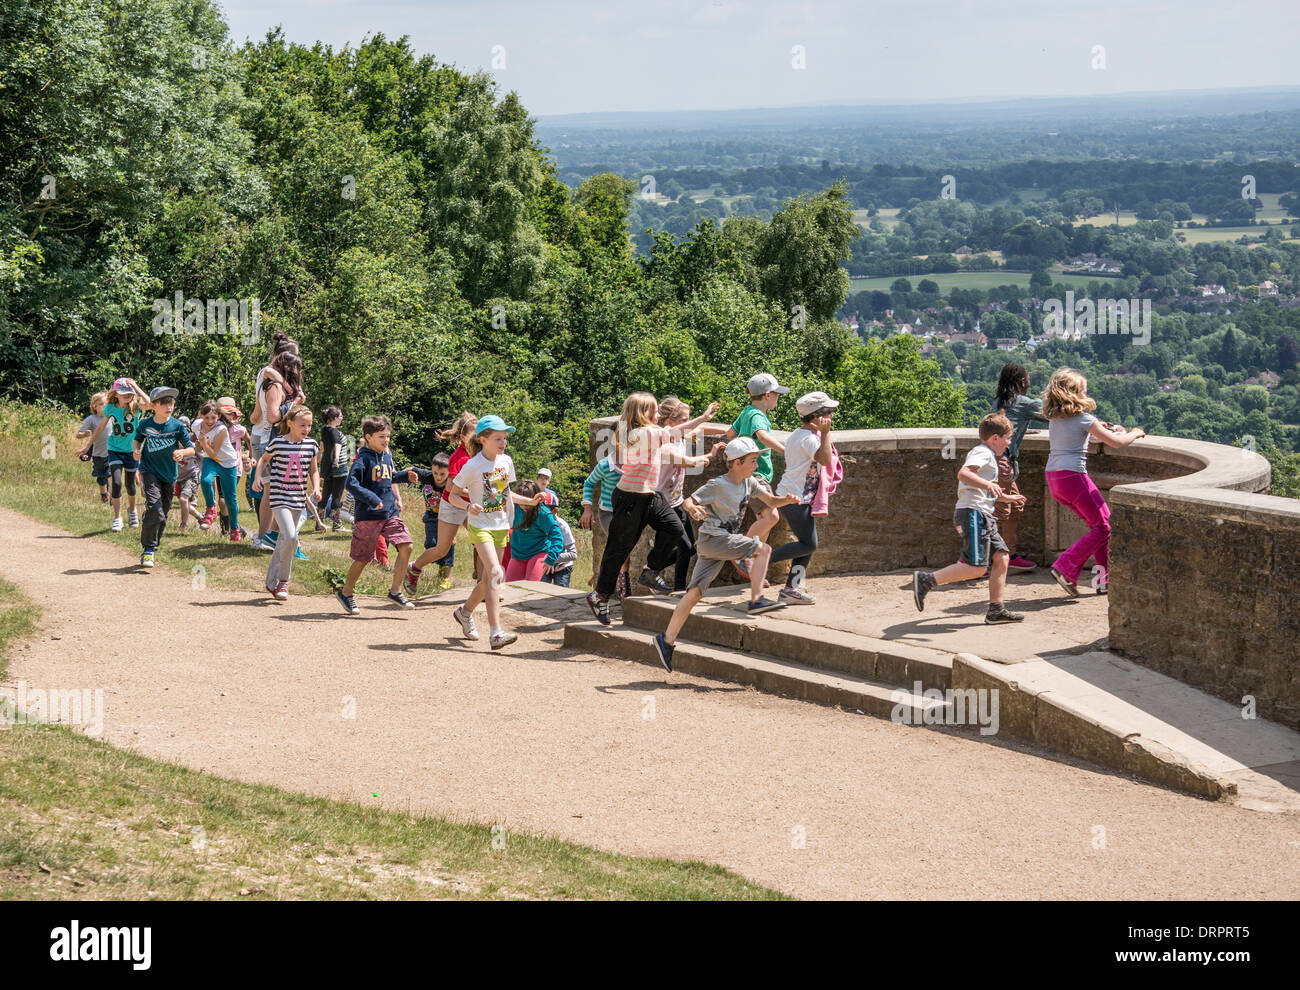 A class of excited schoolchildren, on an outing, rushing to take in the landscape view from a vantage point at Box Hill, Surrey, England, UK. - Stock Image